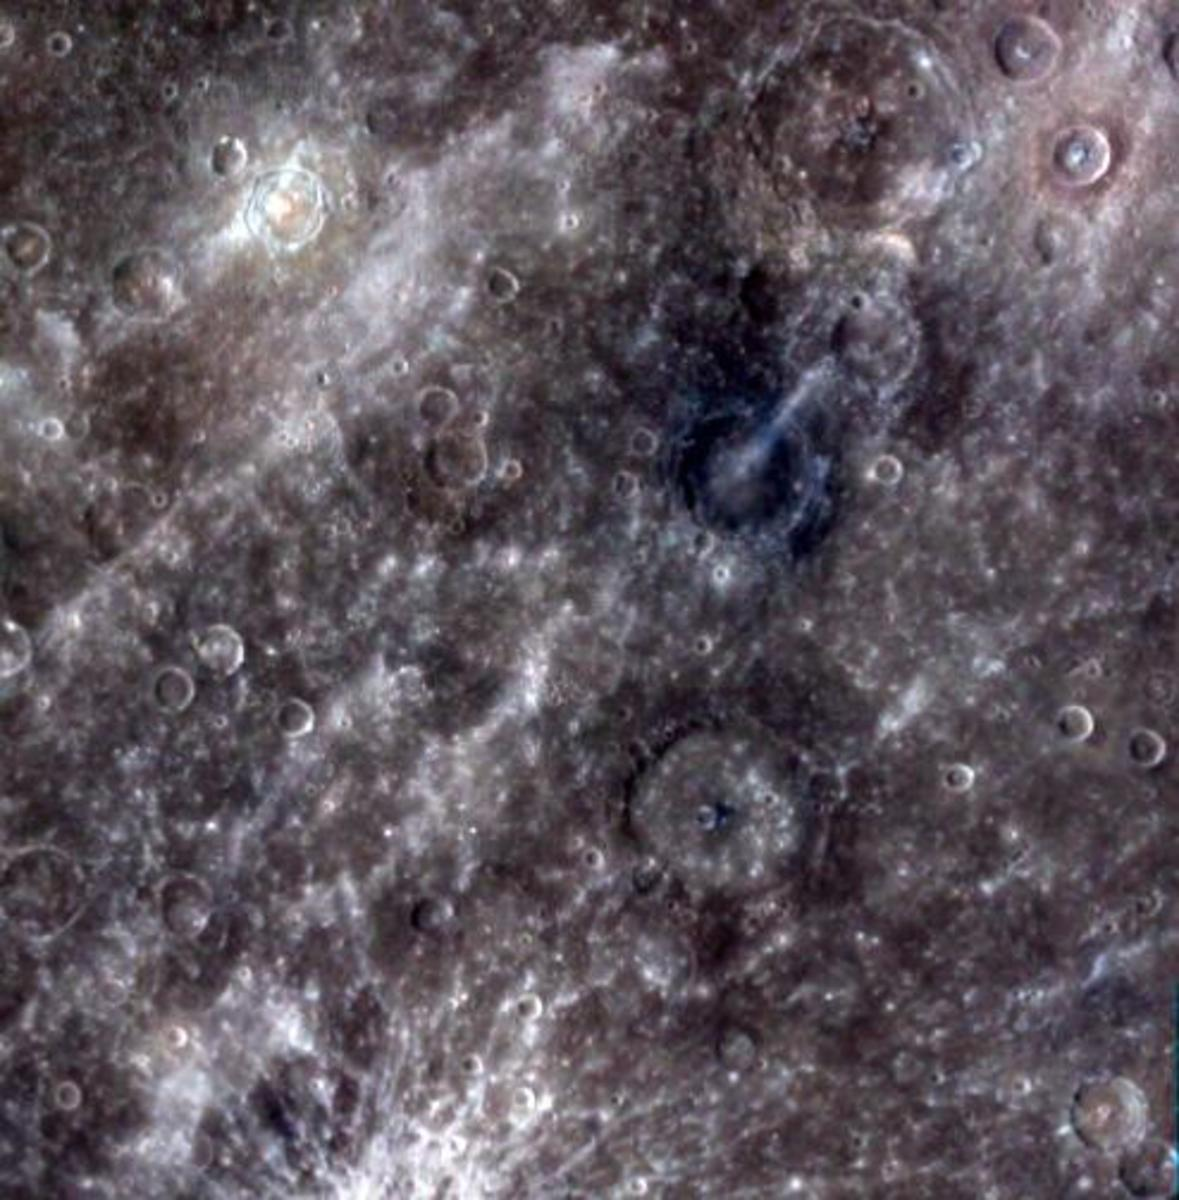 Composite image from 11 different filters highlighting the diversity of the surface.